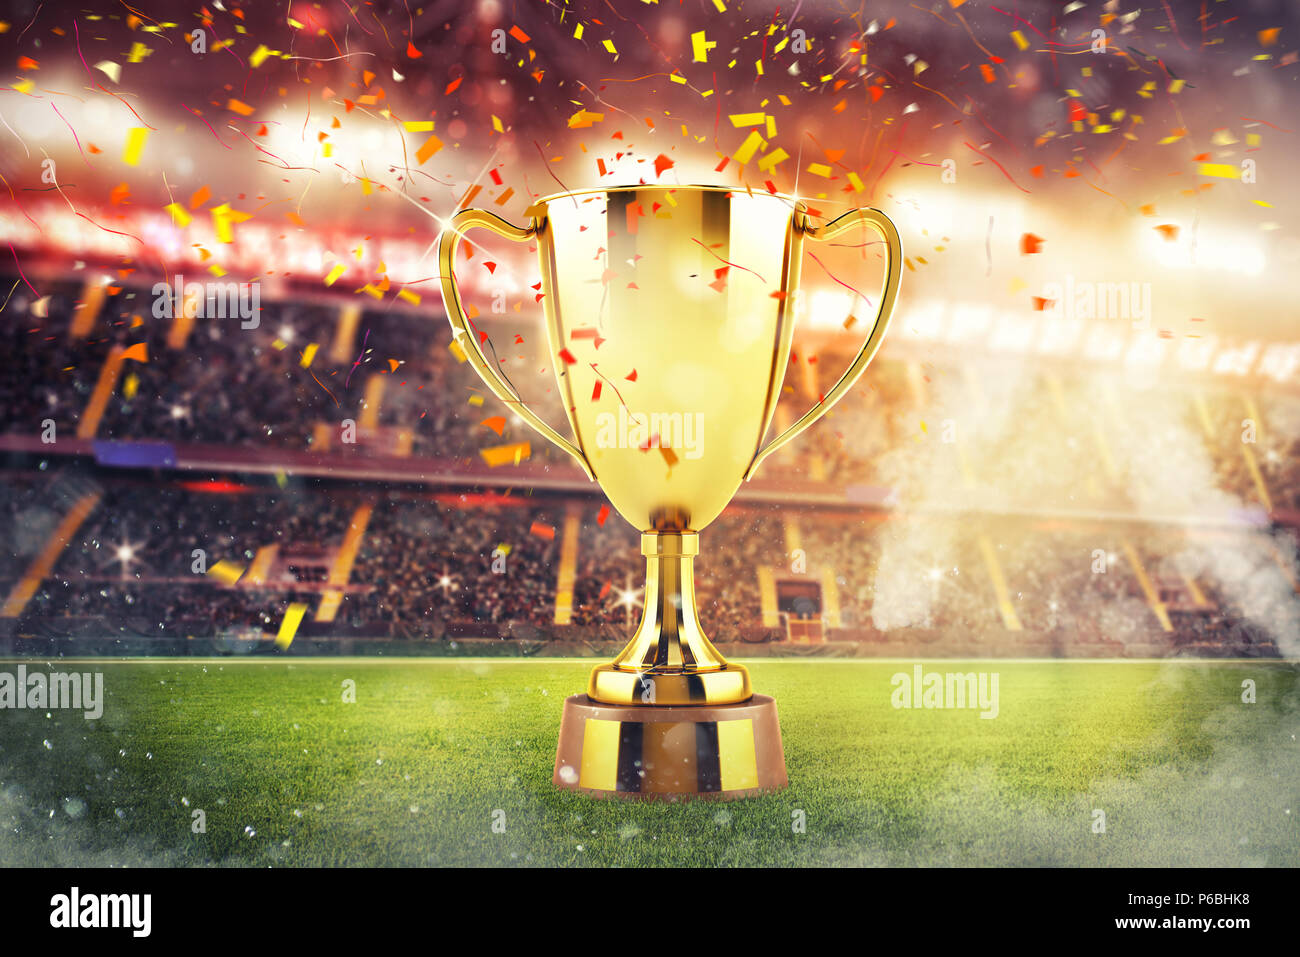 Golden winner's cup in the middle of a stadium with audience - Stock Image